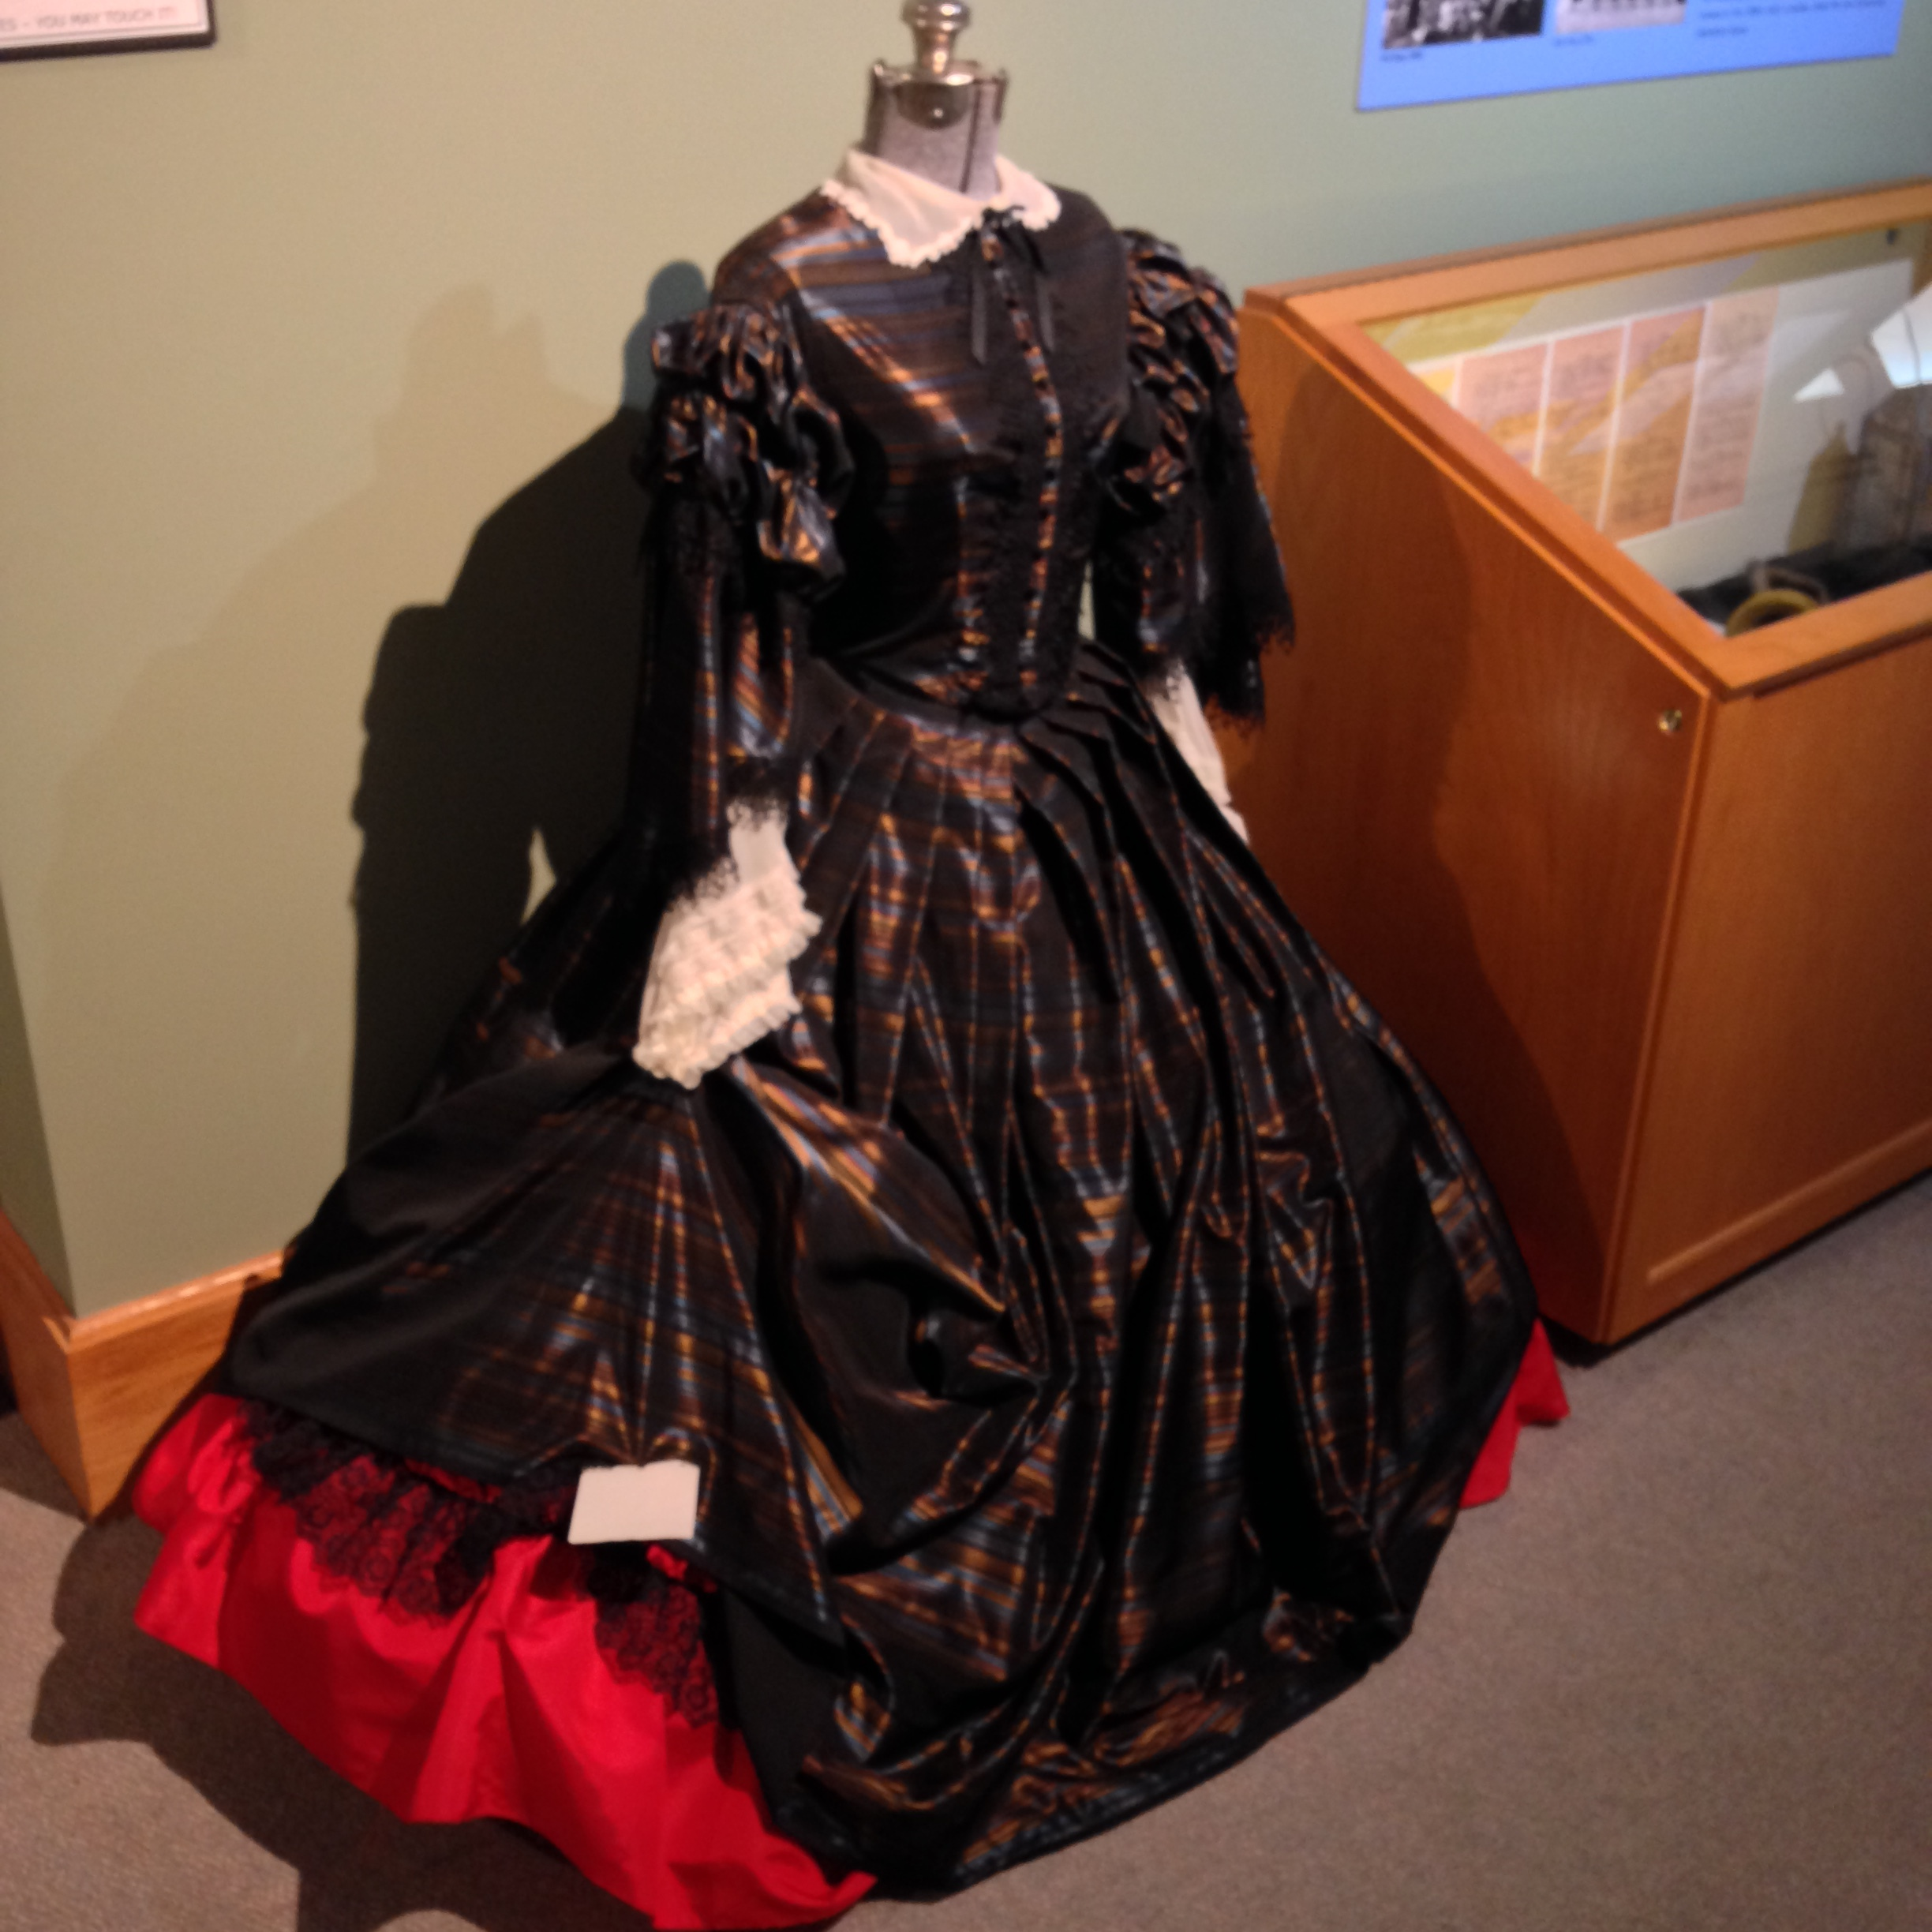 Style choices in the 1850s are illustrated by this dress reproduction: a collar, cinched waist, and multiple skirt layers were all popular.